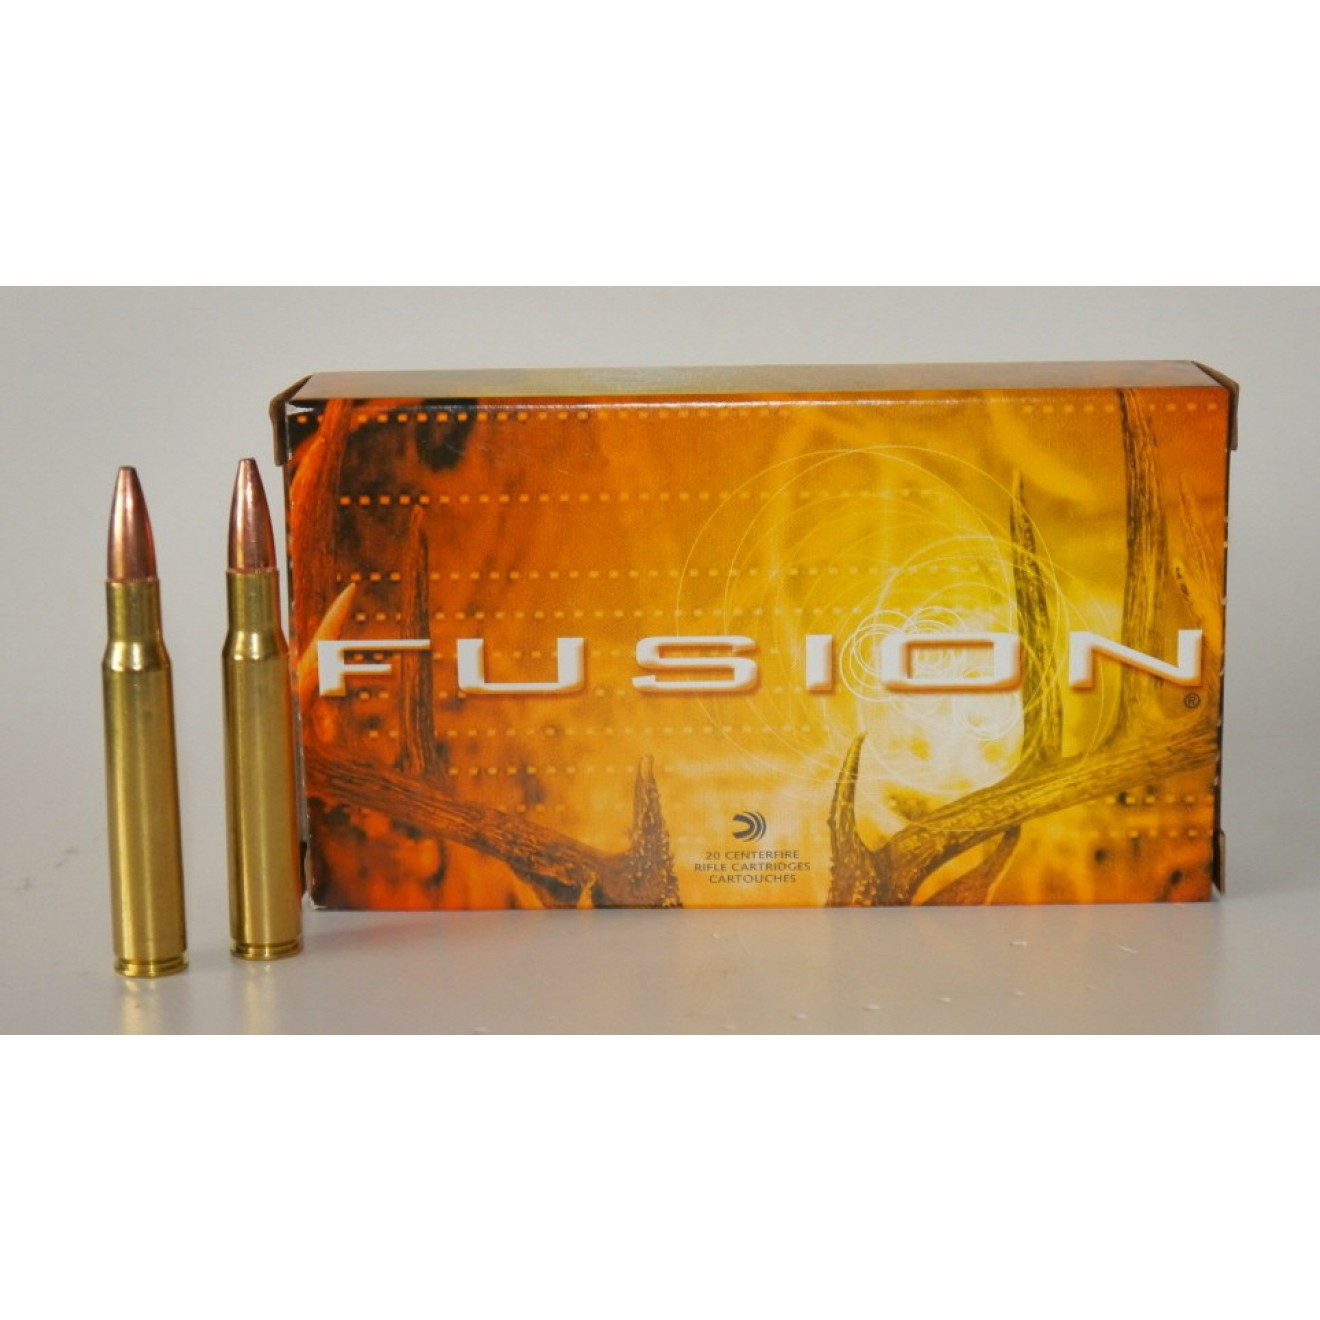 Federal Fusion .30-06